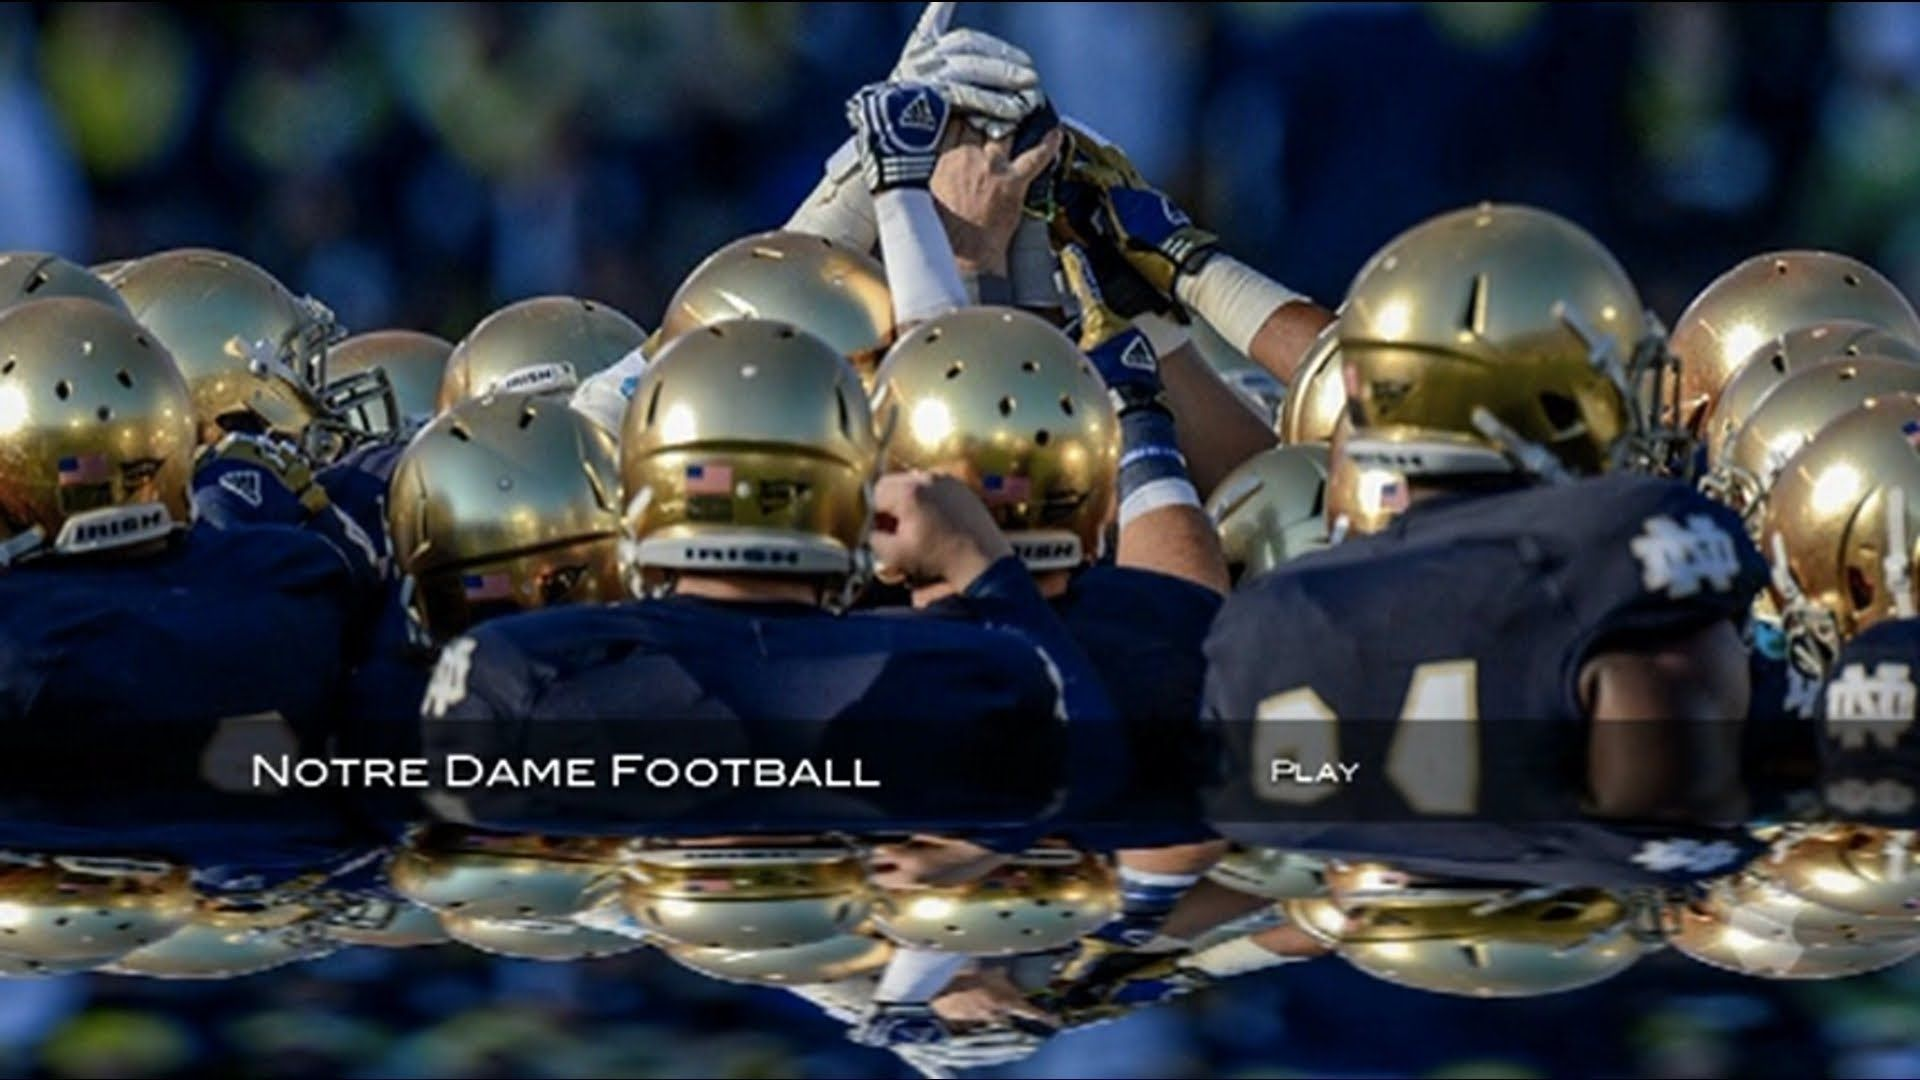 Notre Dame Football Wallpaper